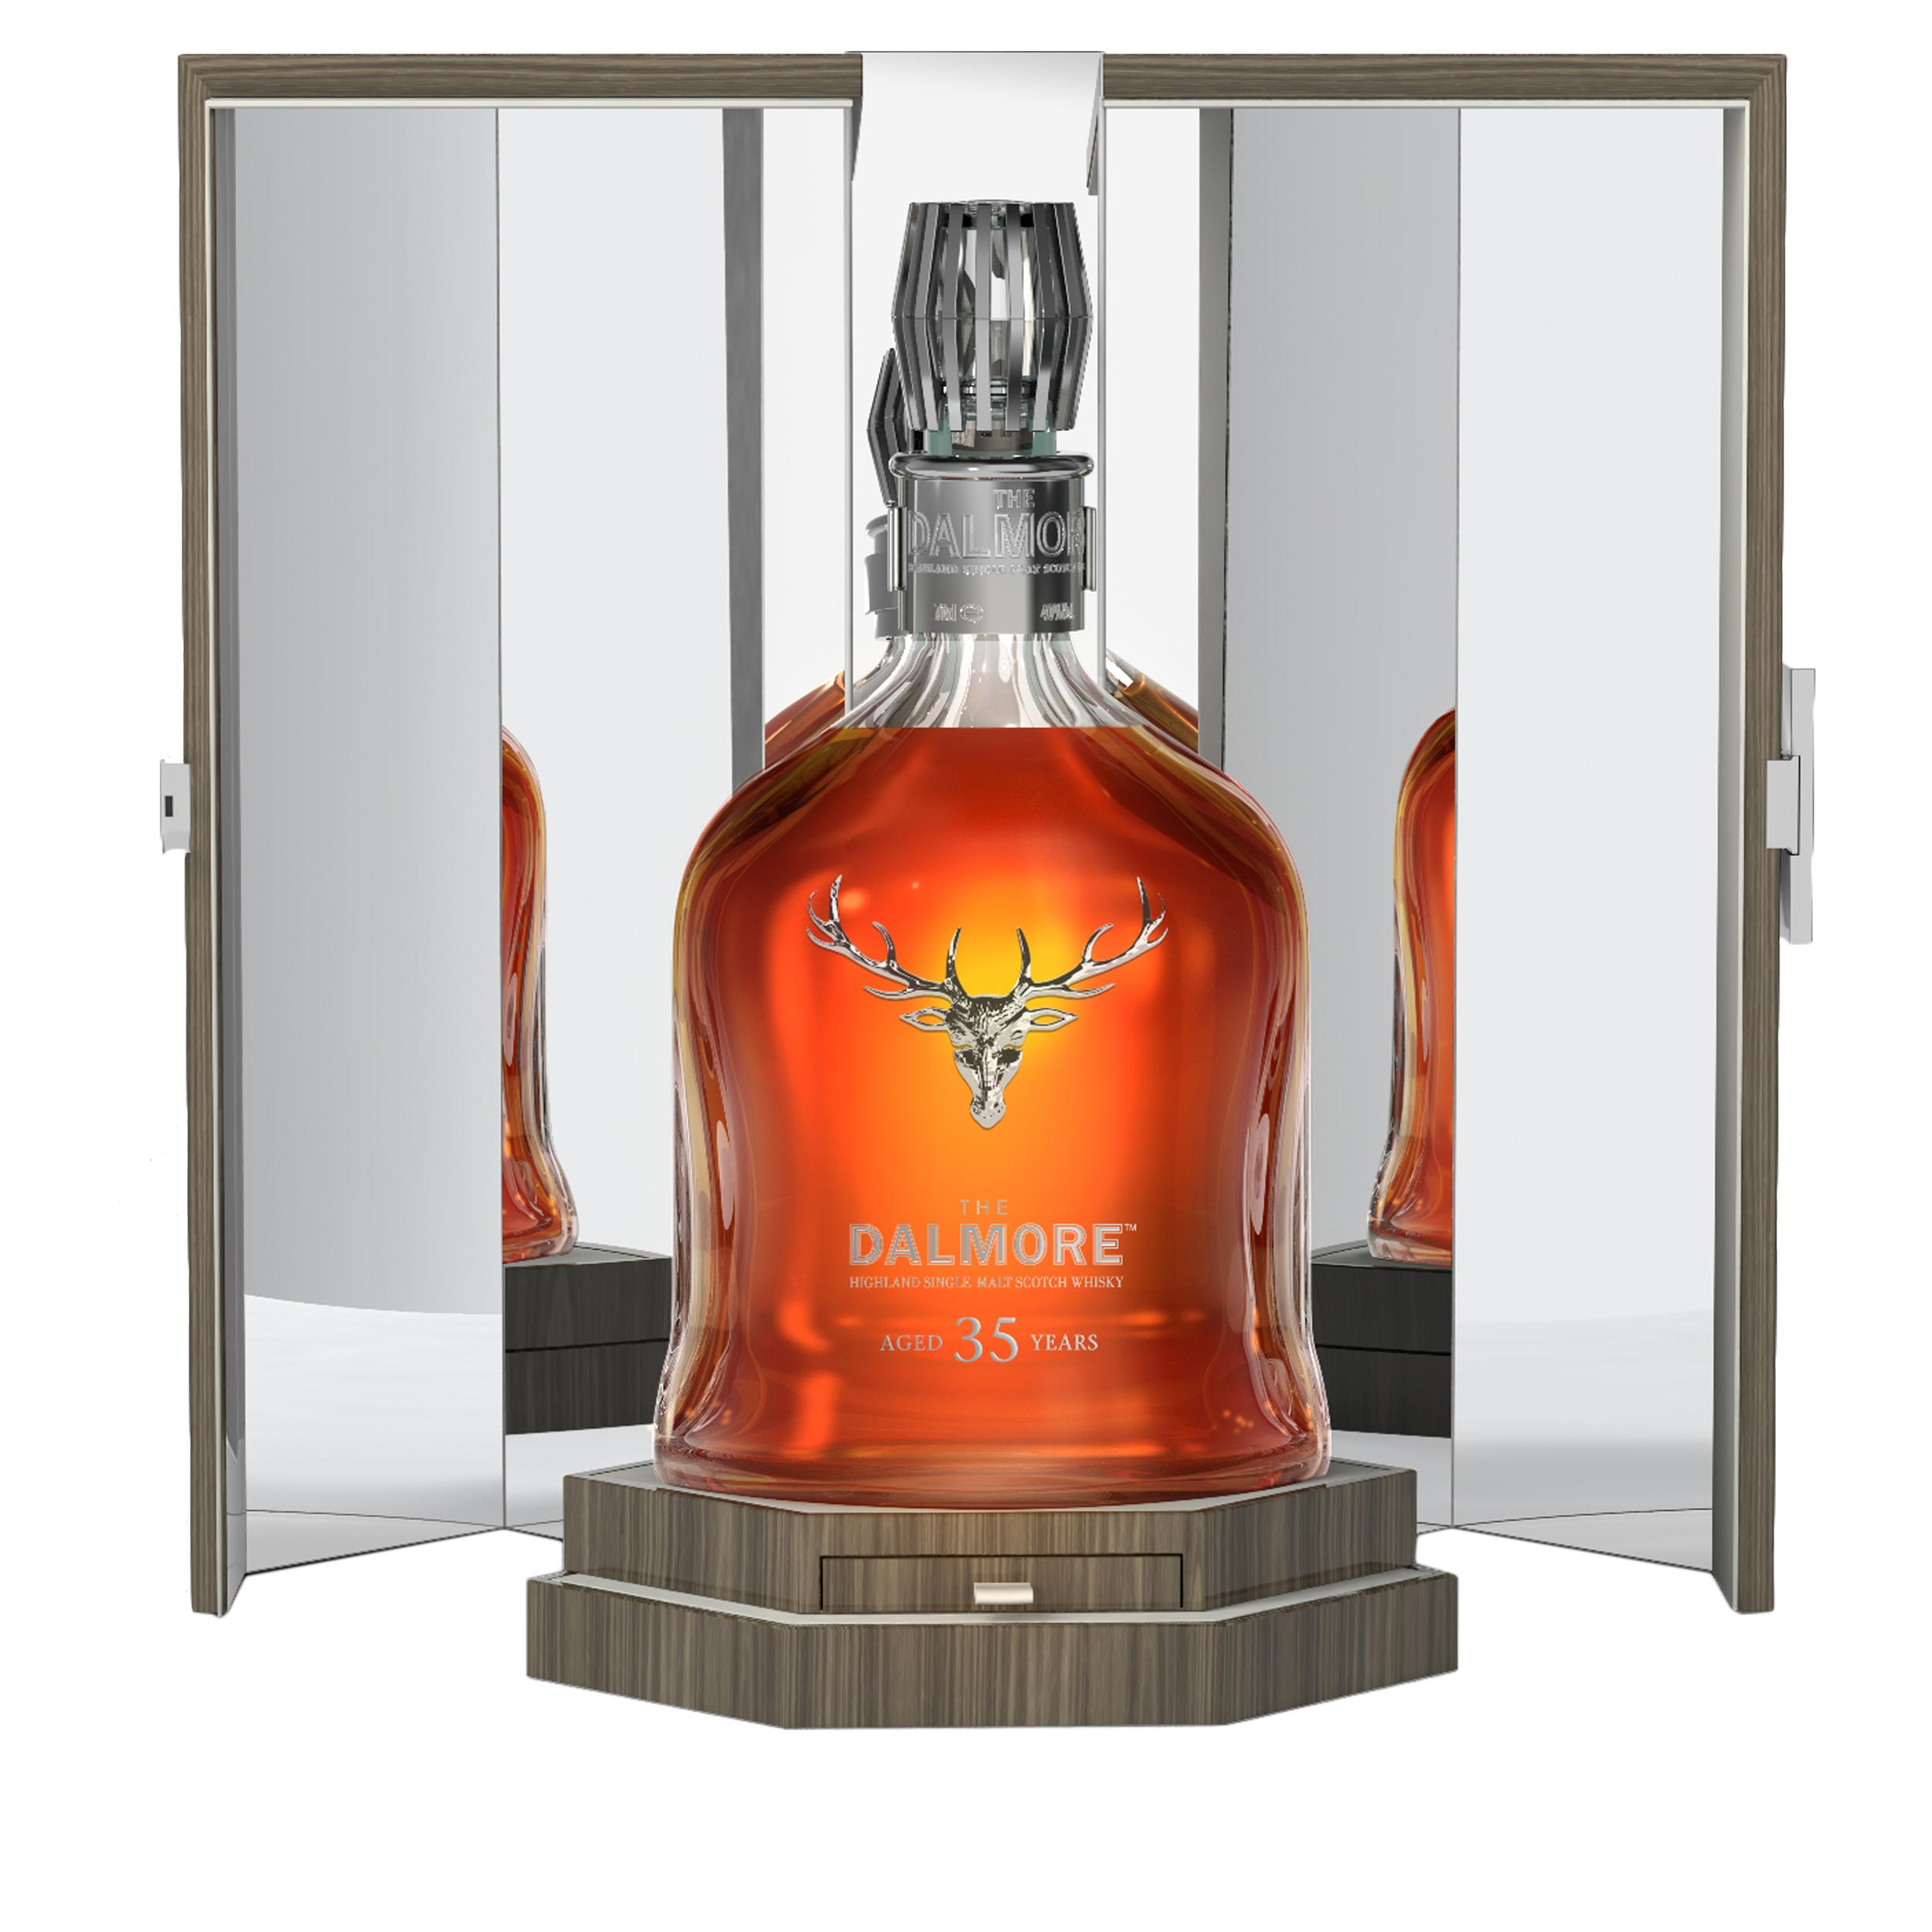 Dalmore 35 Year Old Highland Single Malt Scotch Whisky 70cl